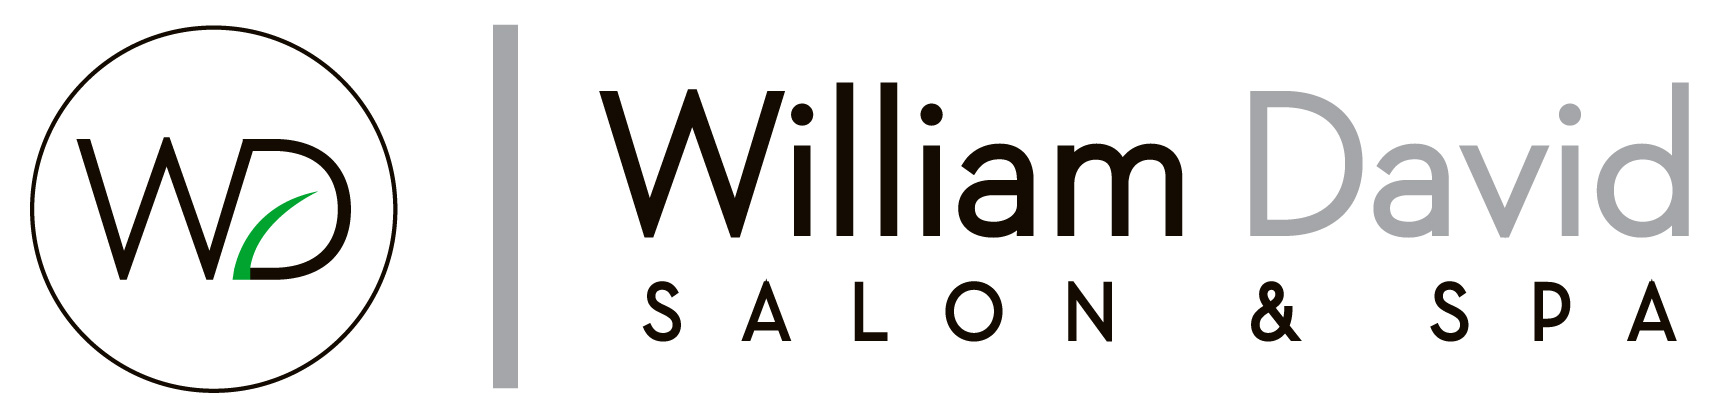 William David Salon and Spa